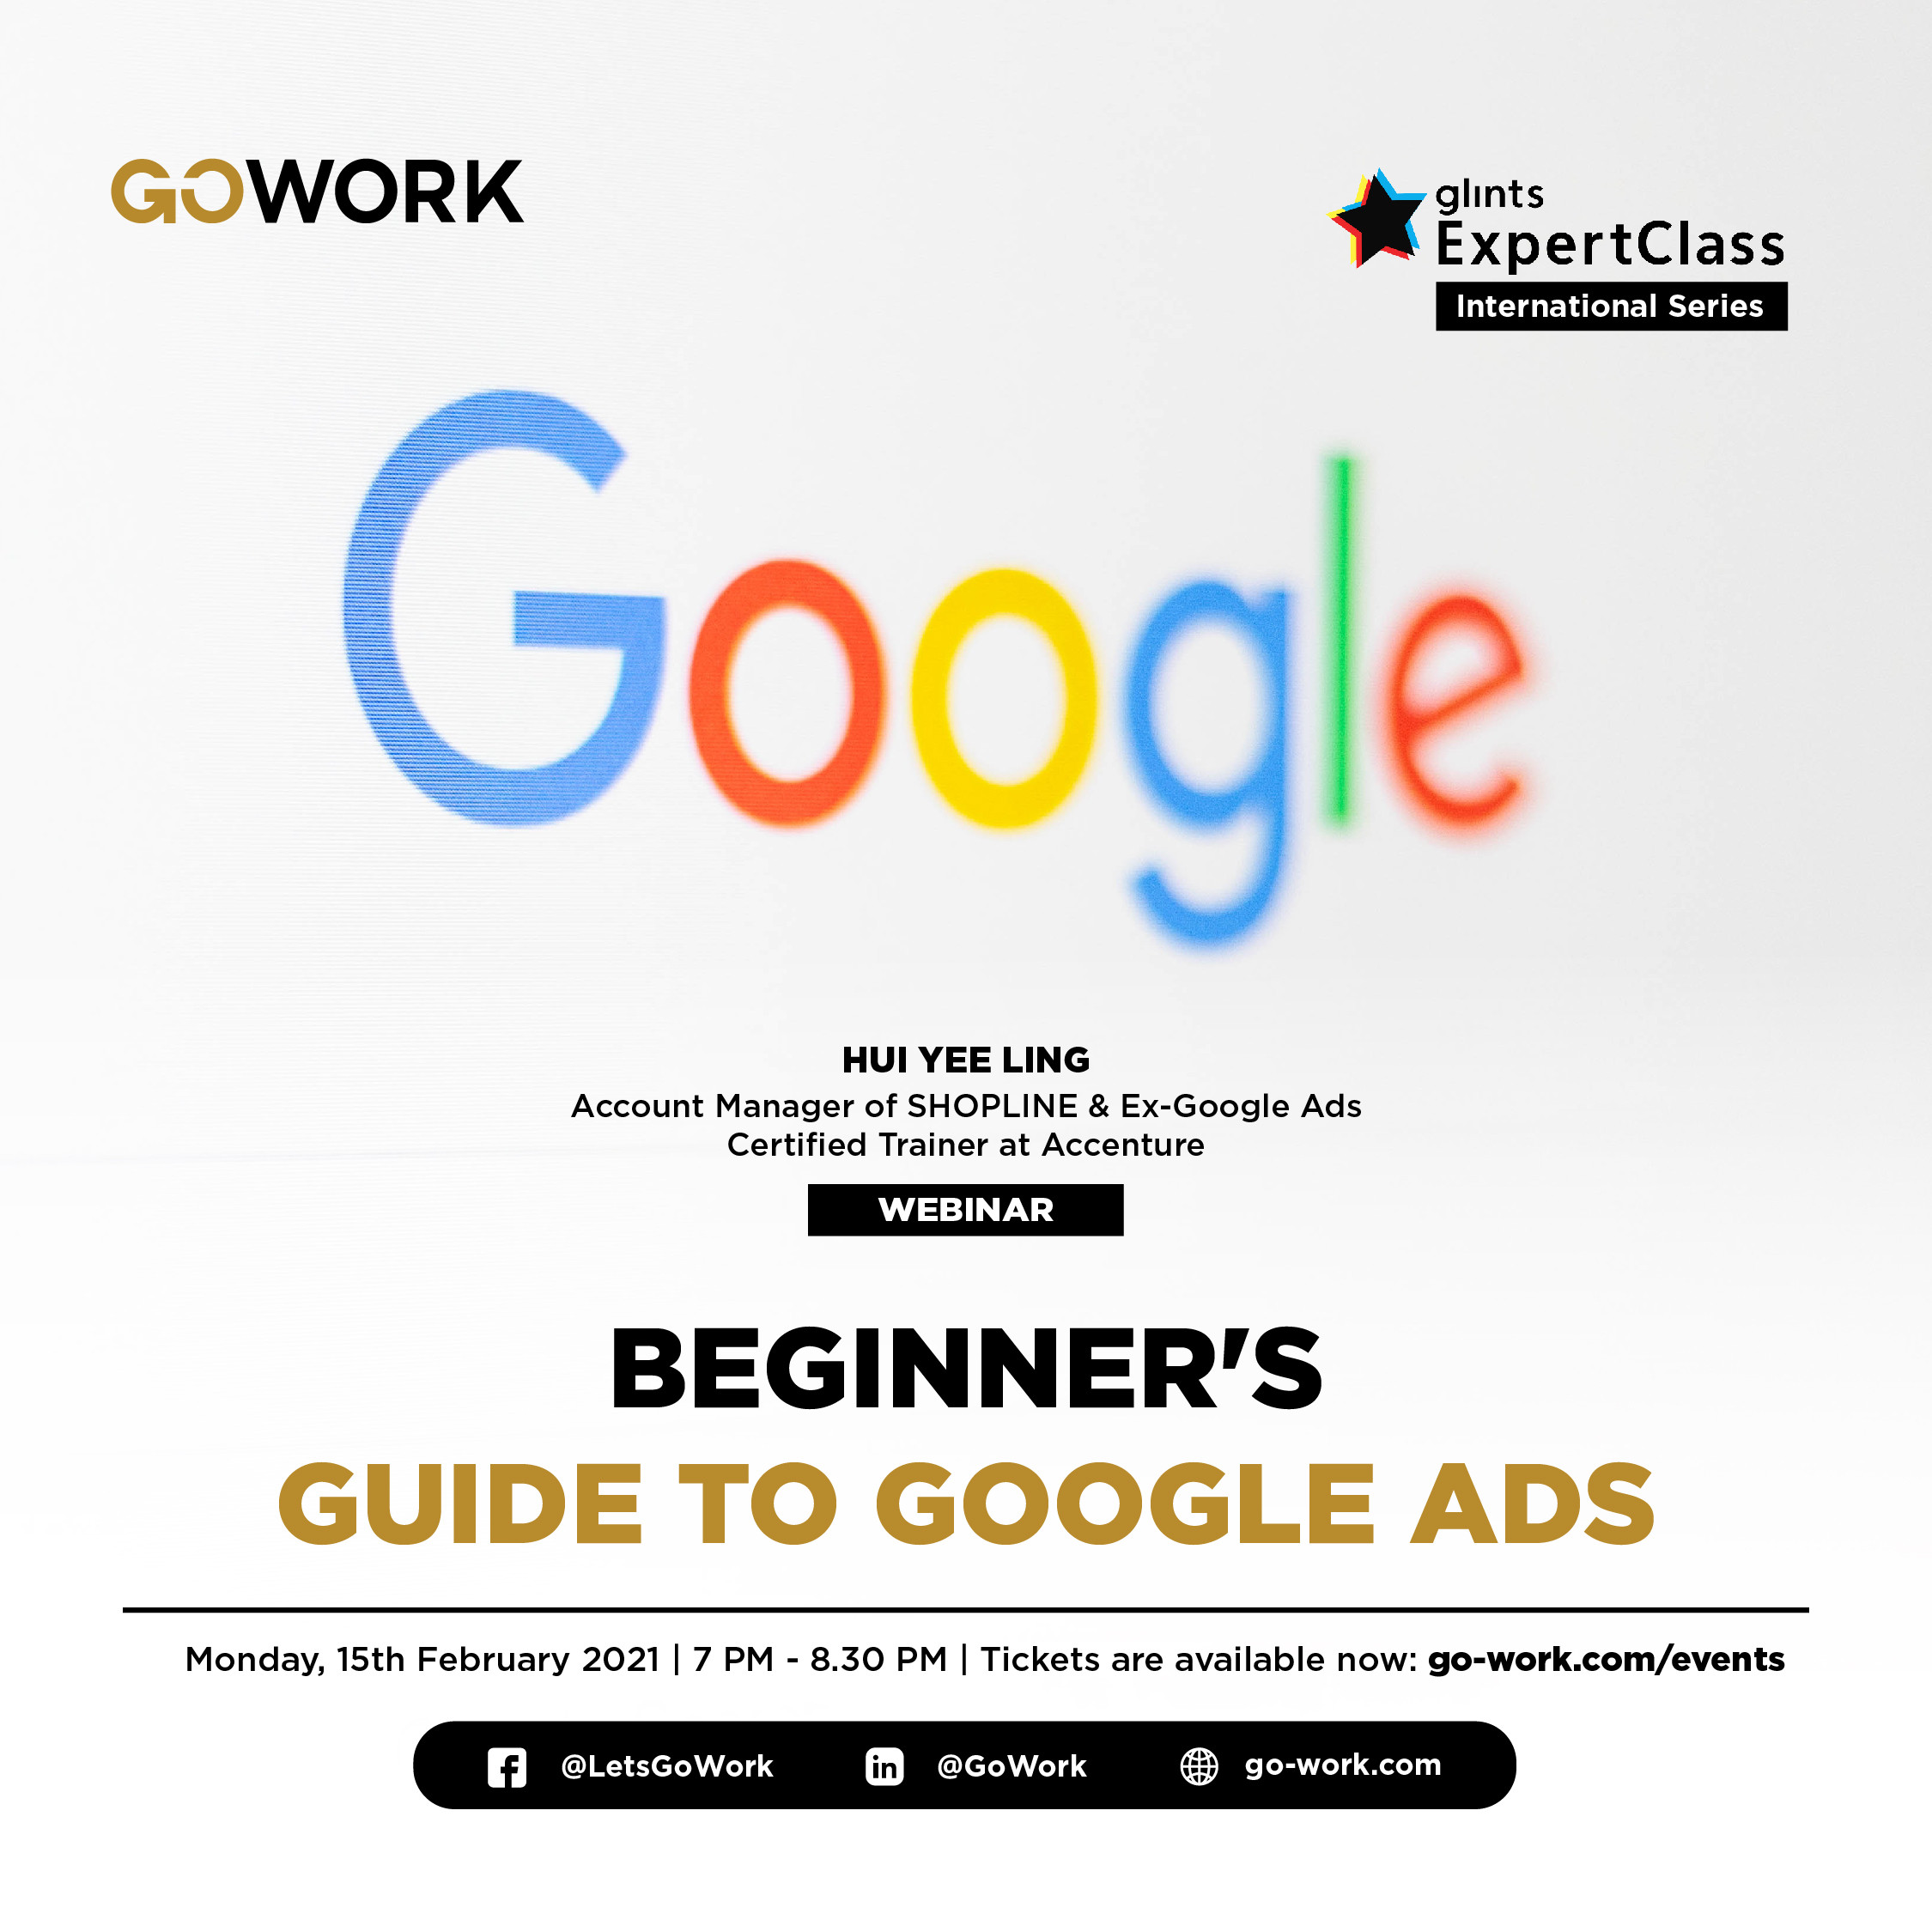 Beginner's Guide to Google Ads